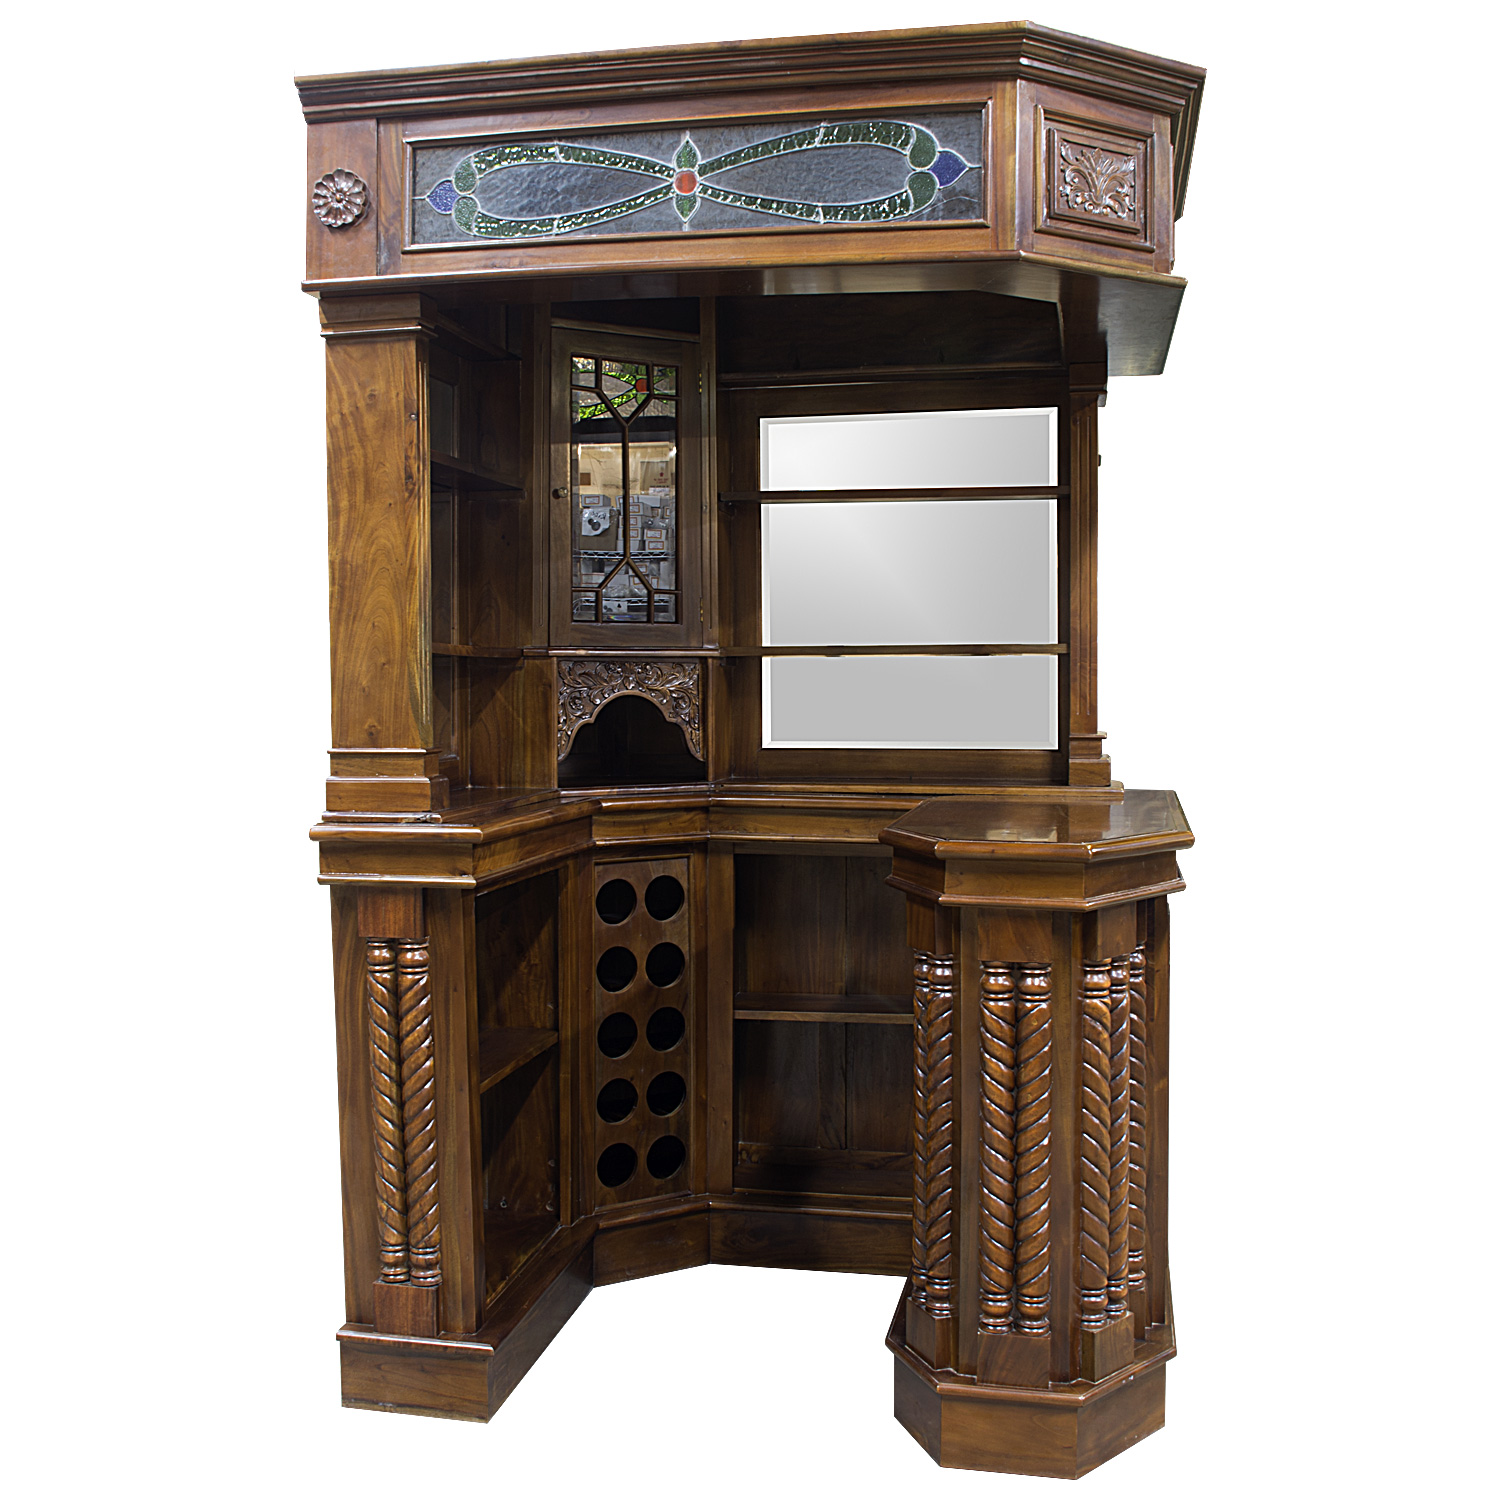 Solid Mahogany Corner Home Bar Furniture With Tiffany Glass Canopy Antique Replica 9 The Kings Bay